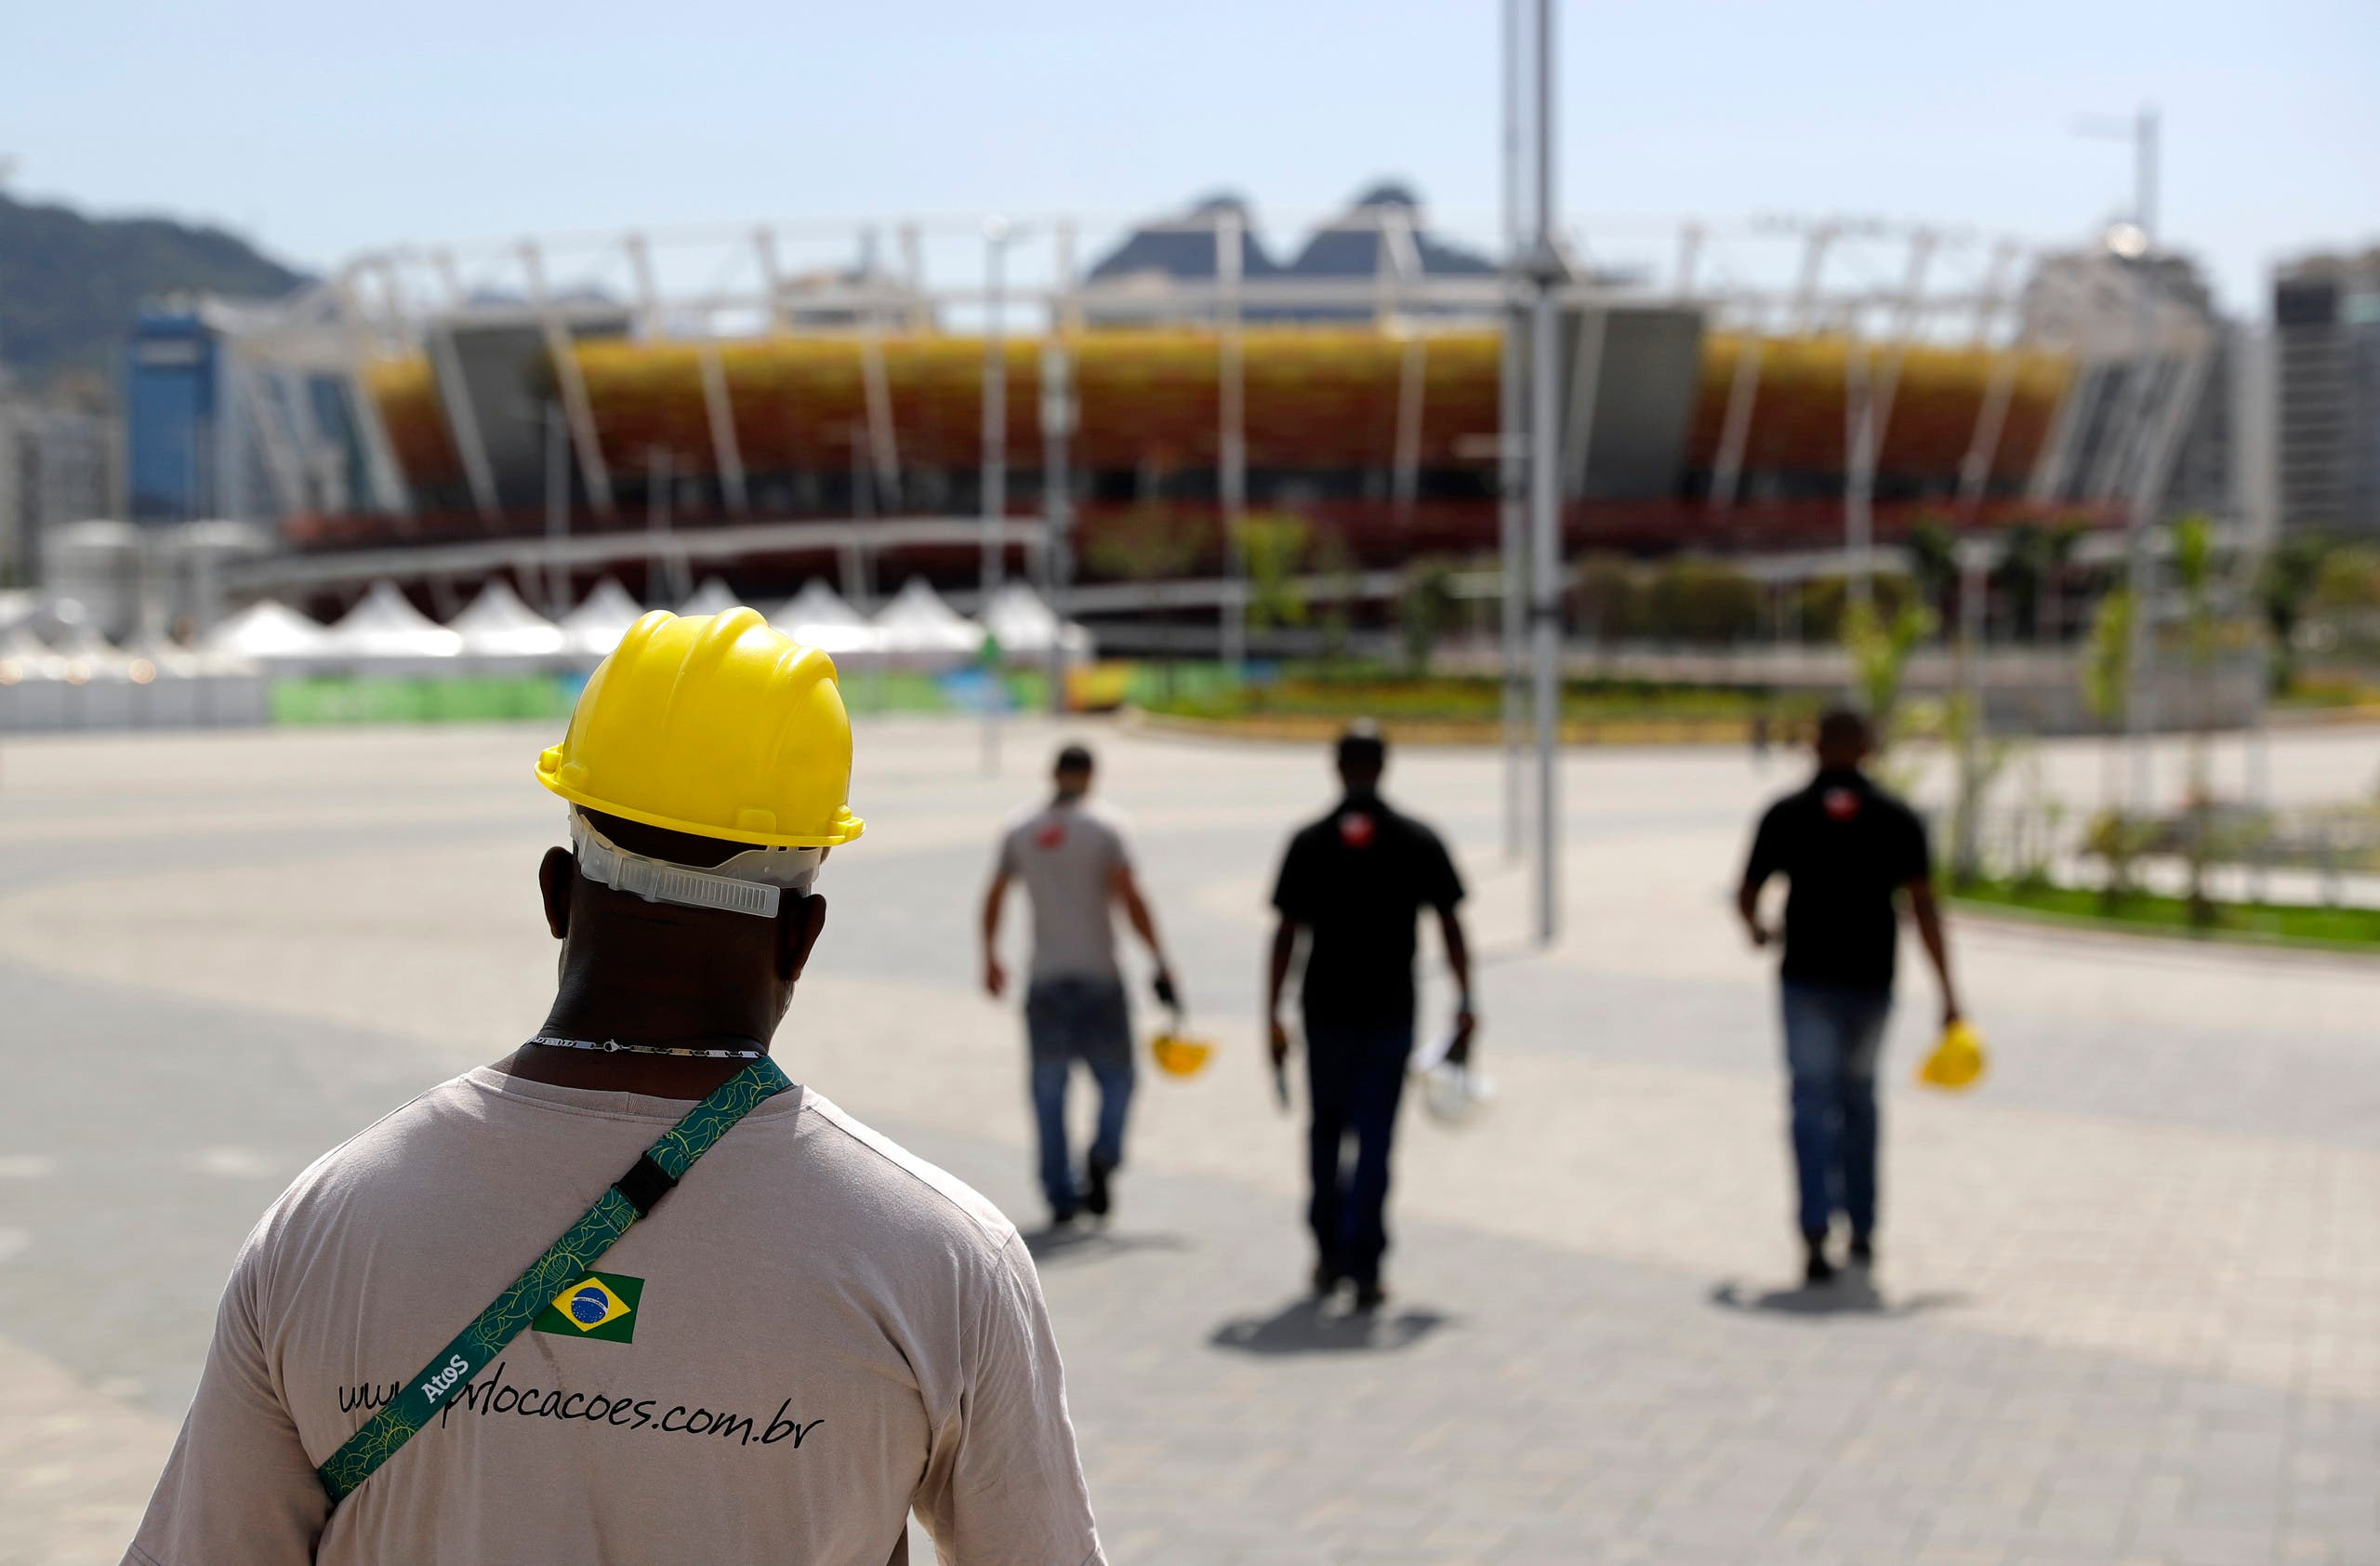 Construction workers walk inside Olympic Park as preparations take place for the 2016 Rio de Janeiro Games in Rio de Janeiro, Brazil, Wednesday, July 27, 2016. (AP)